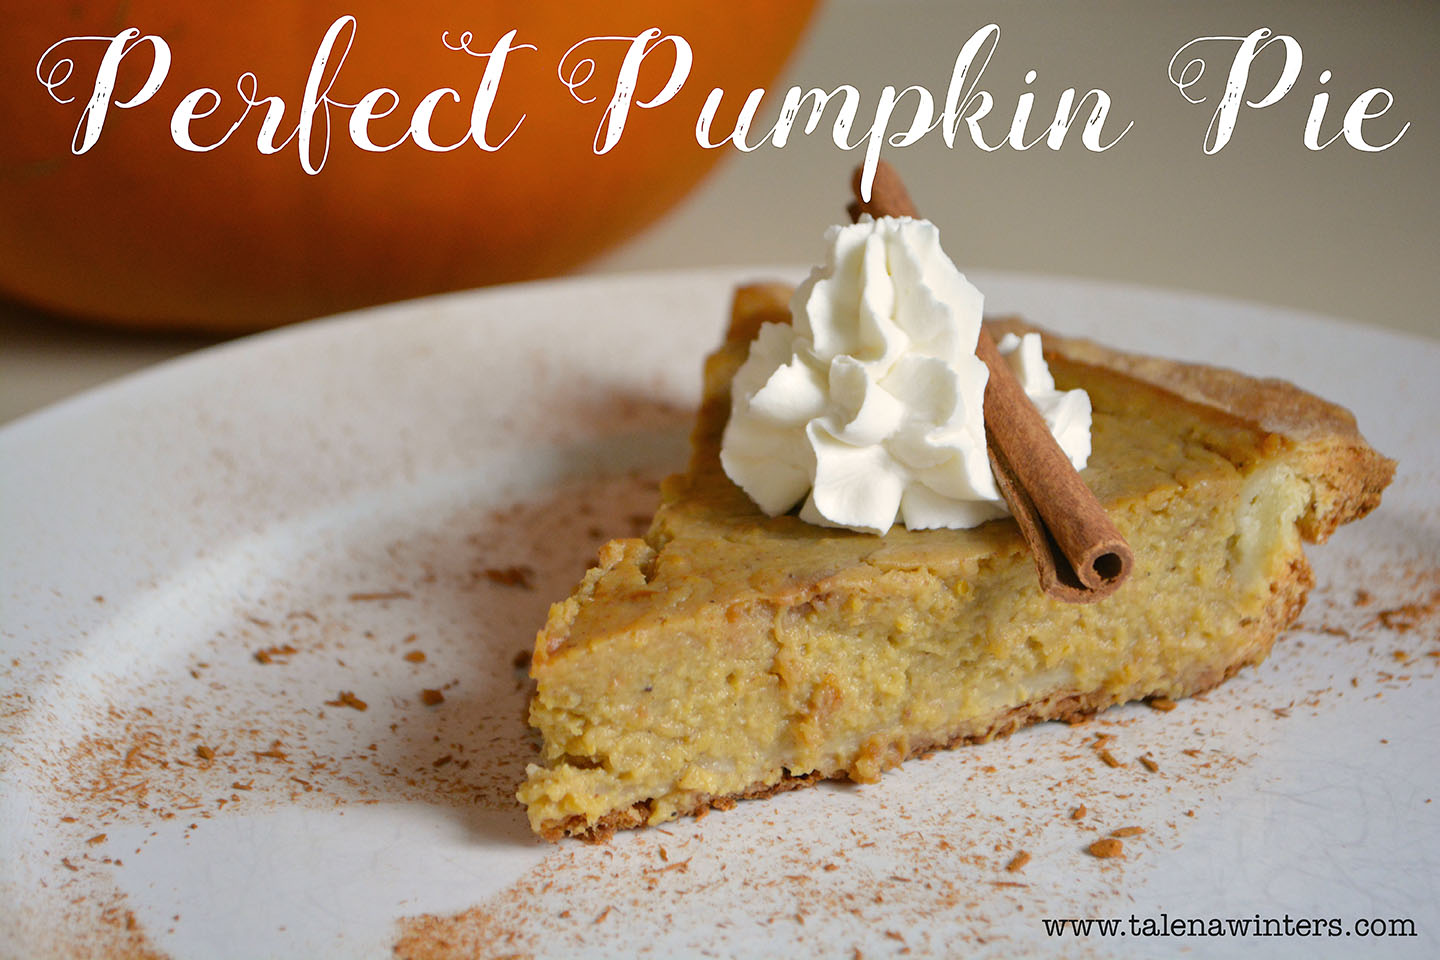 Perfect Pumpkin Pie recipe with a dairy-free filling. So moist and yummy!